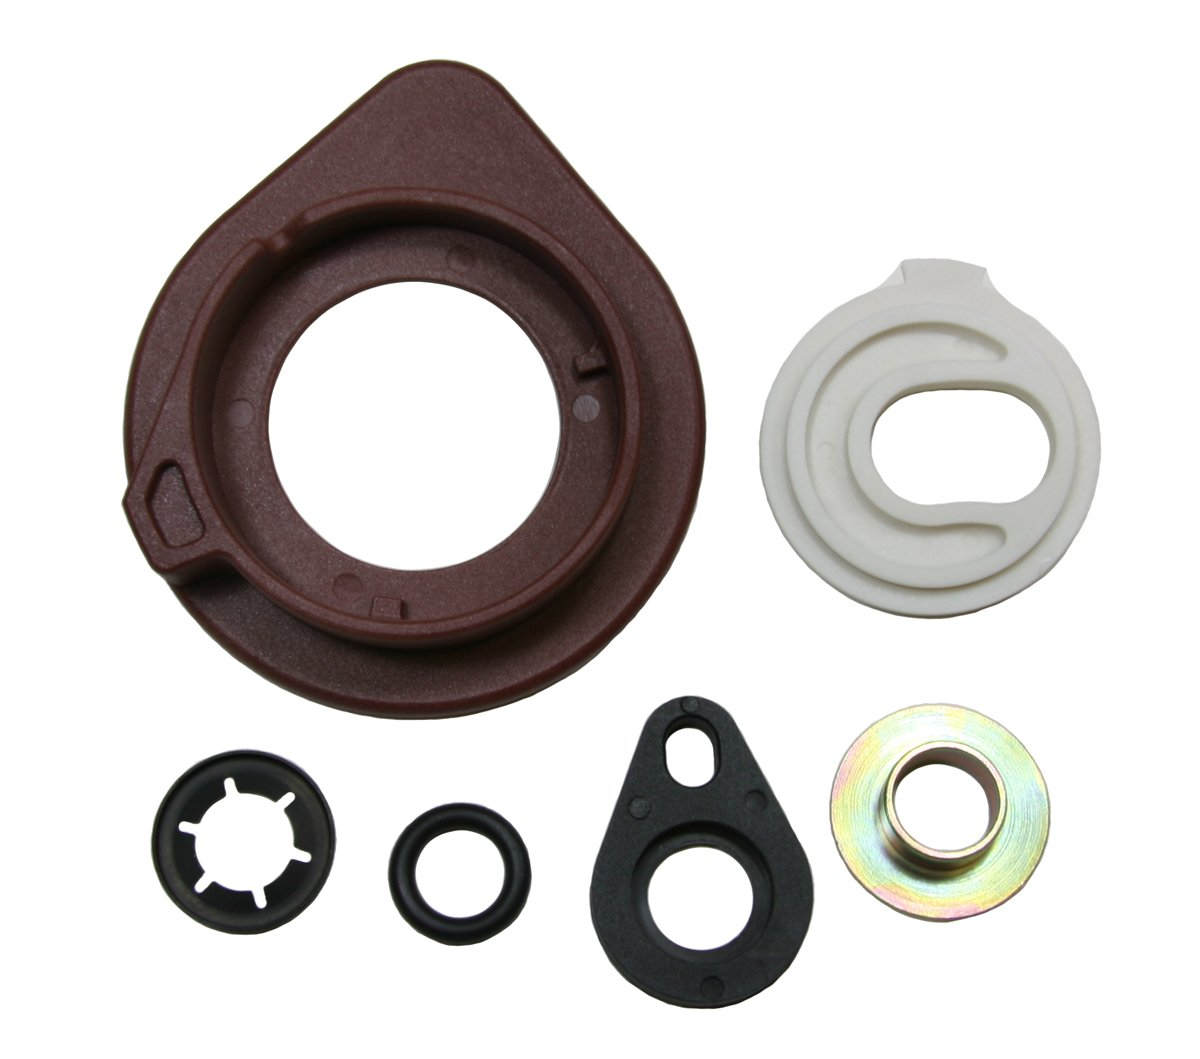 SPI, SM-11004, Rewind Starter Pawl Kit for Ski-Doo snowmobiles replaces OEM# 420852296 by SPI